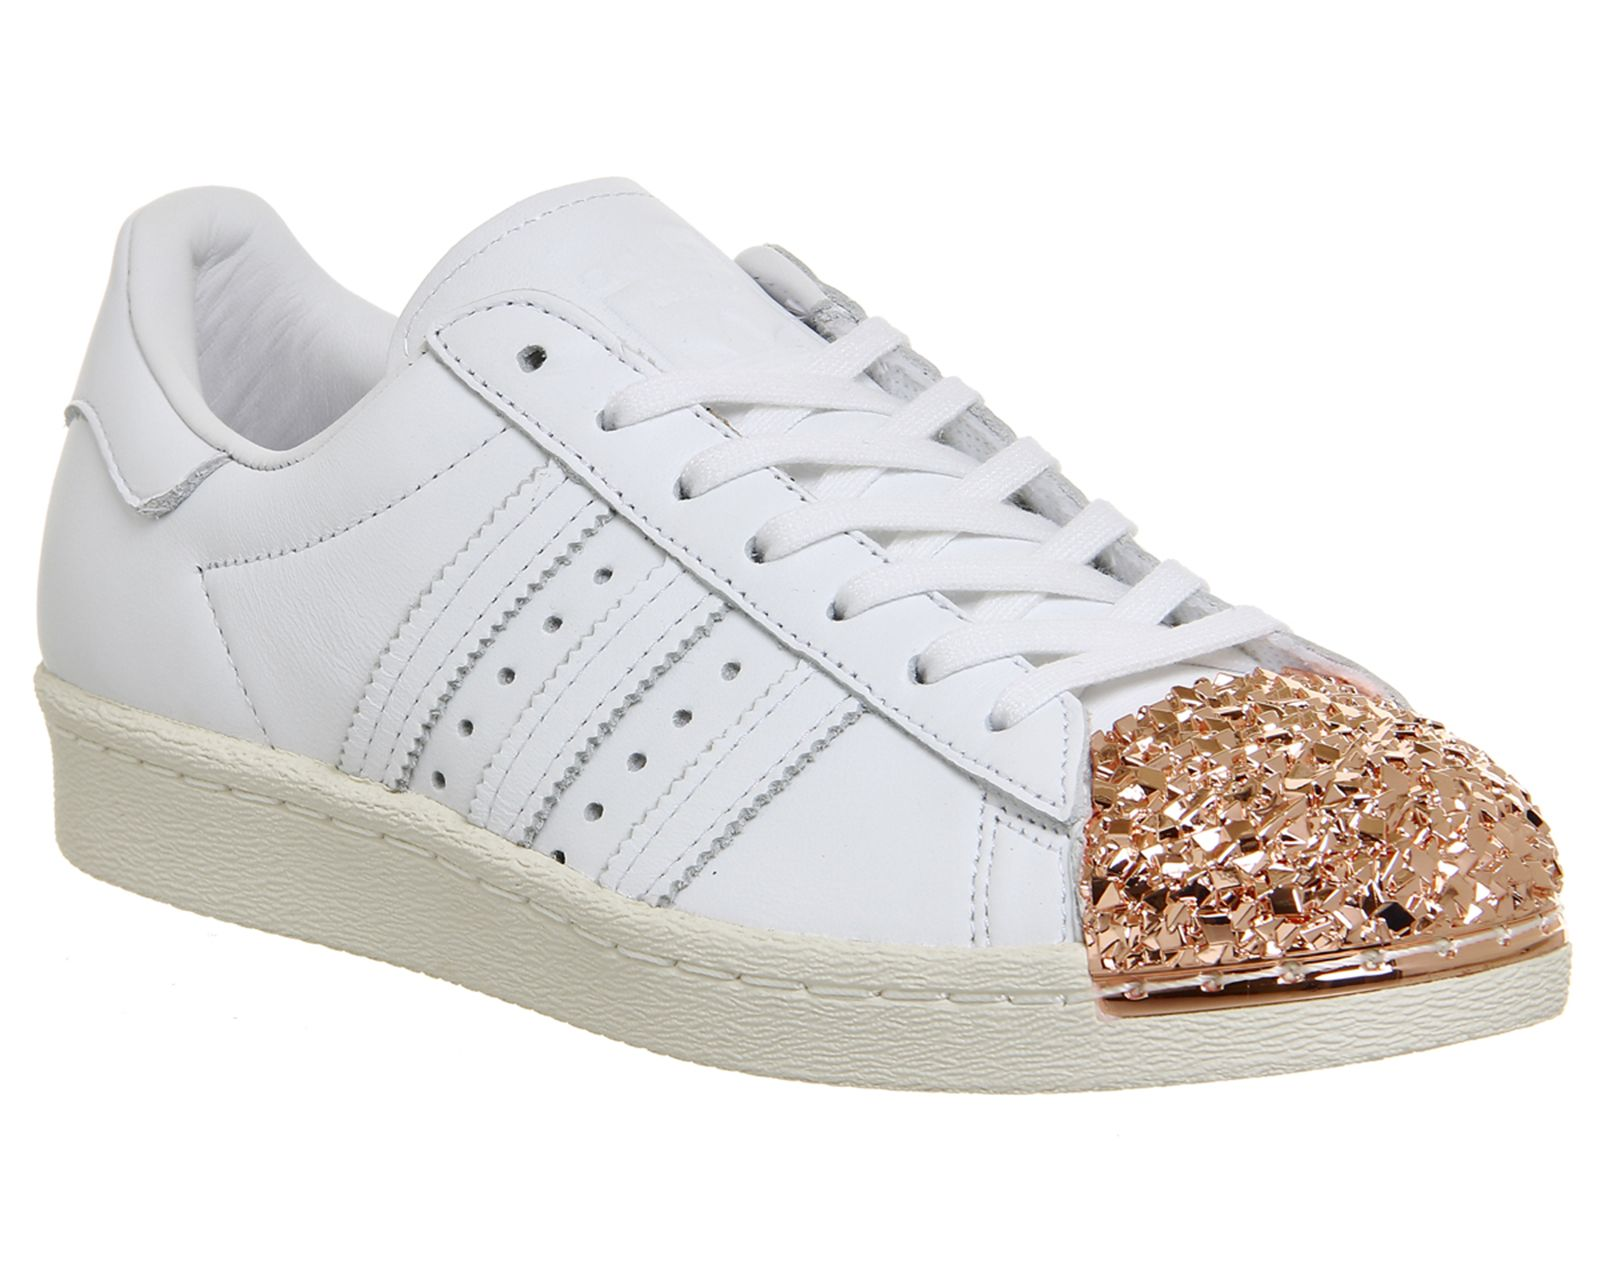 adidas superstar metal toe 80